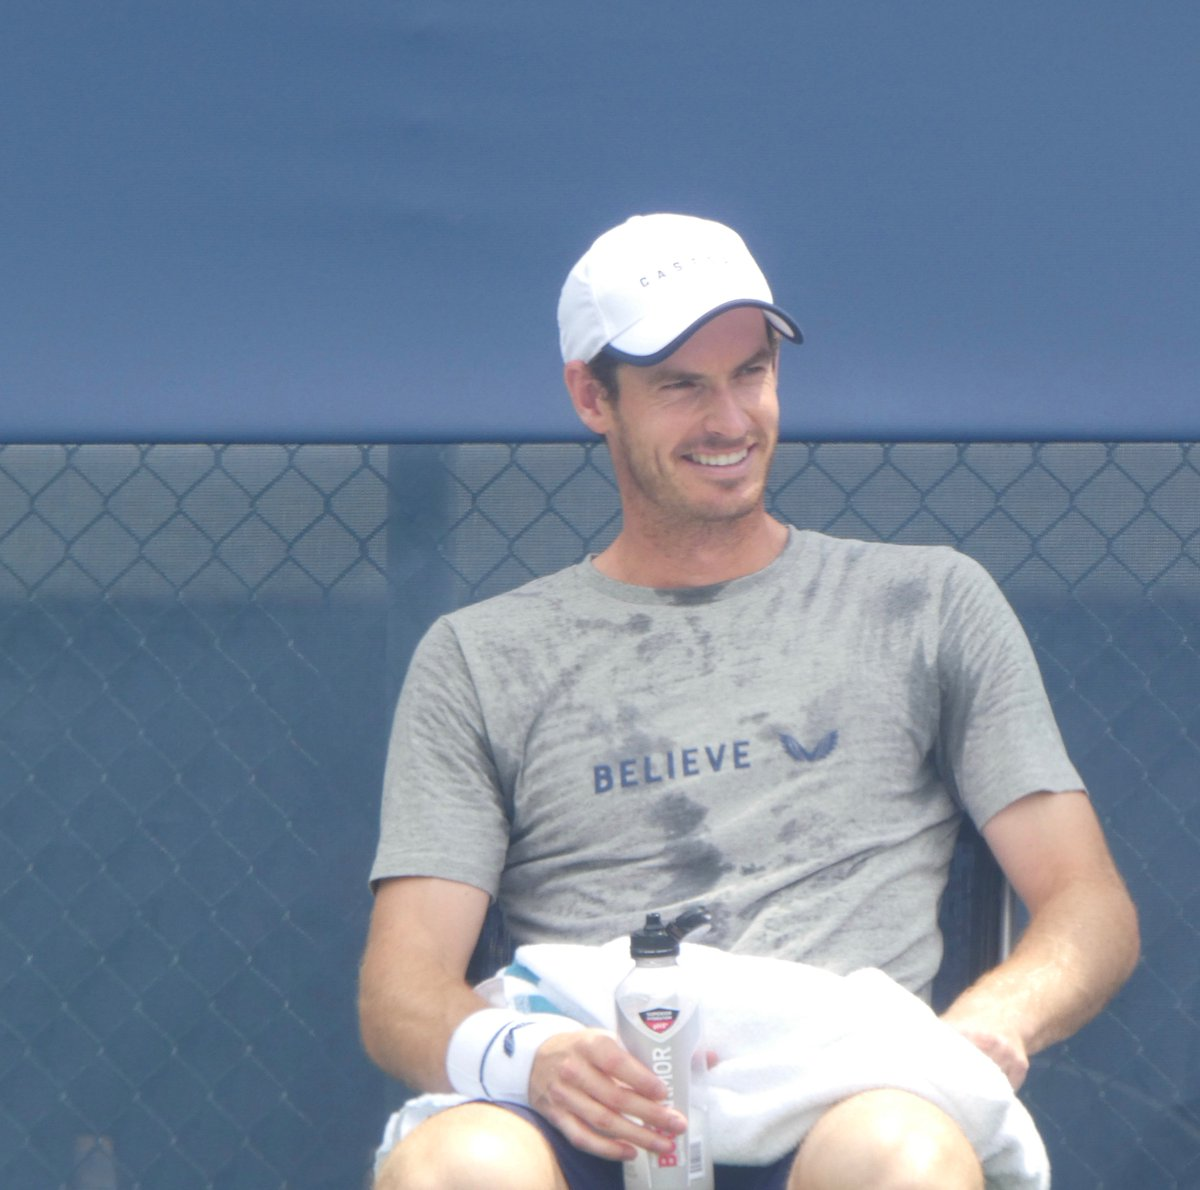 Good morning. Andy Murray is smiling. That's the tweet. #AndyMurray #CincyTennis<br>http://pic.twitter.com/nnbTqWPYtt